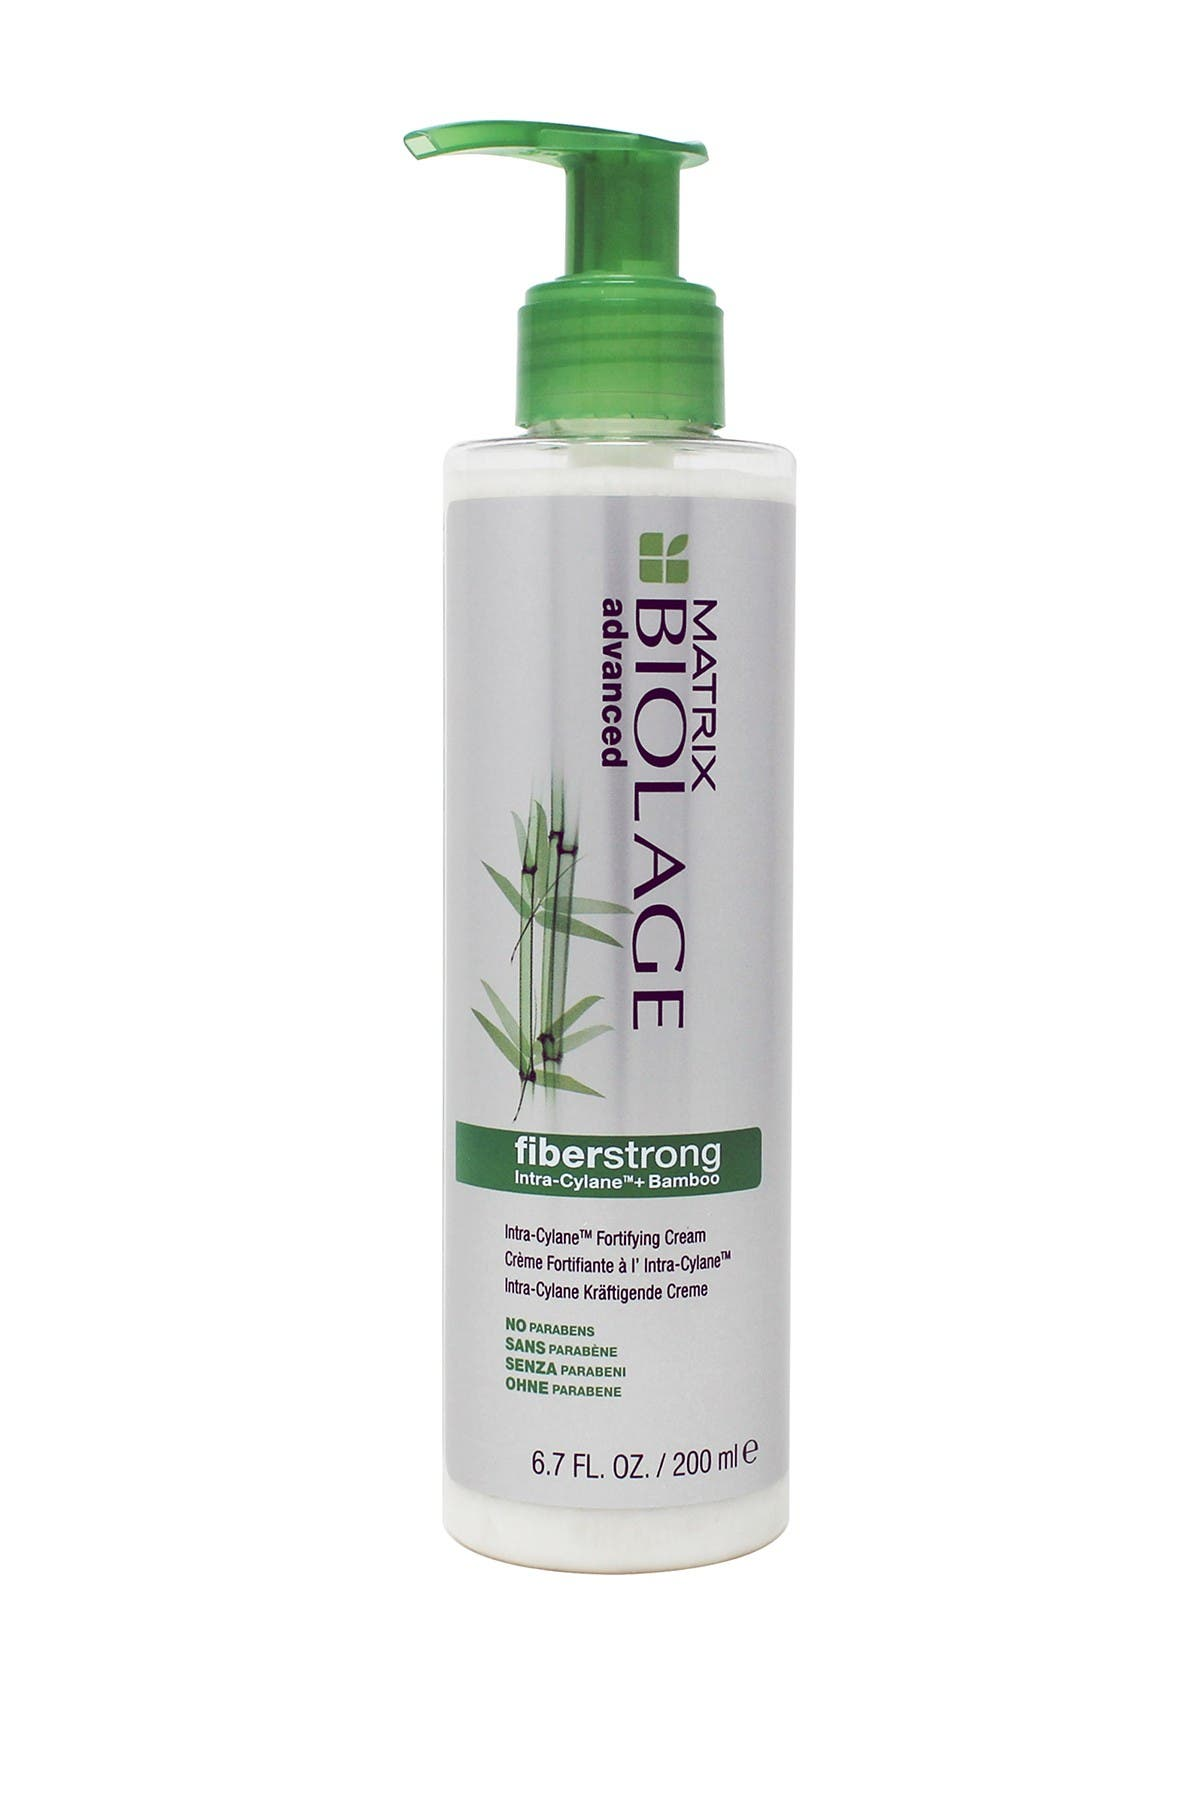 Image of BIOLAGE Advanced Fiberstrong Intra-Cylane + Bamboo Fortifying Cream - 6.7 oz.